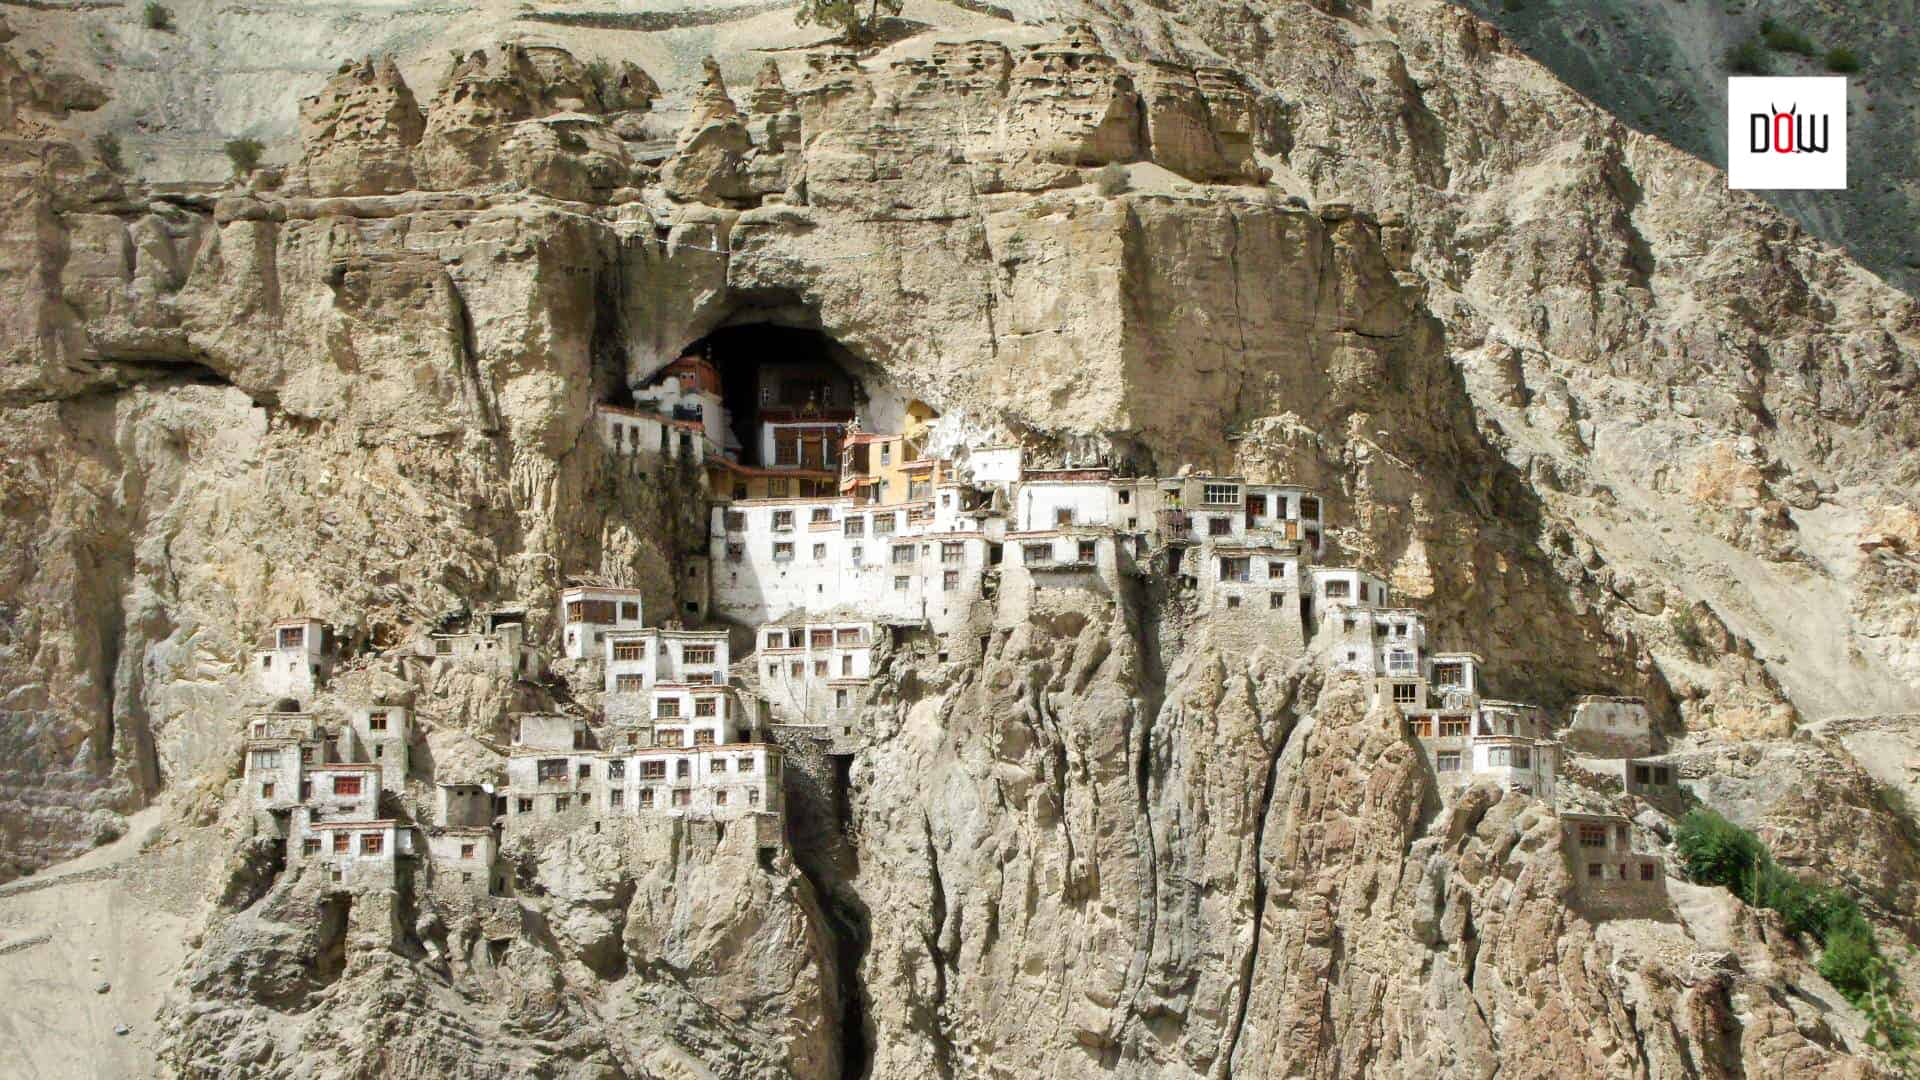 Phugtal Monastery, a close up view